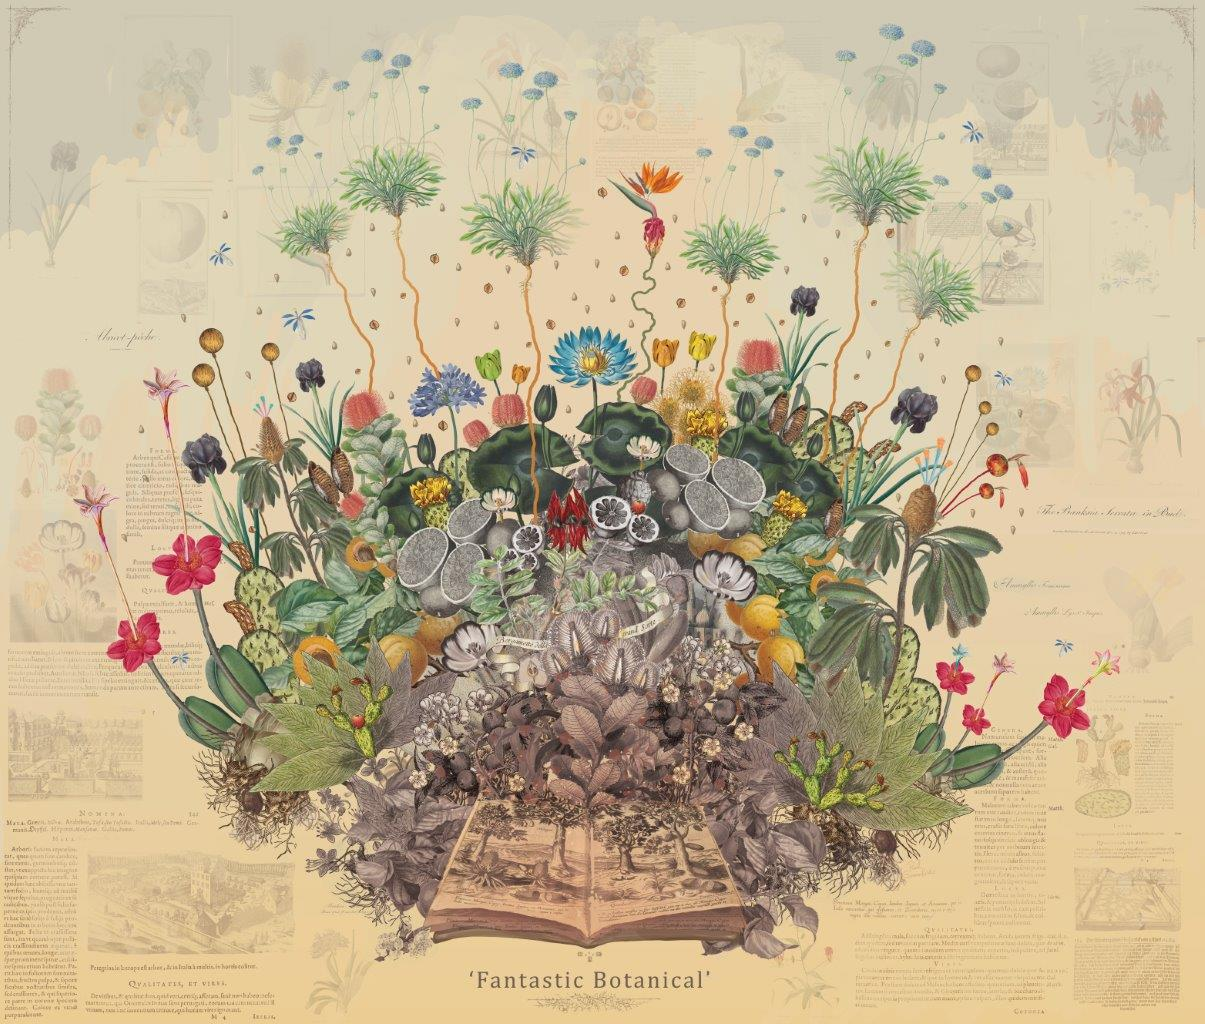 A collage of flowers emerging from a book